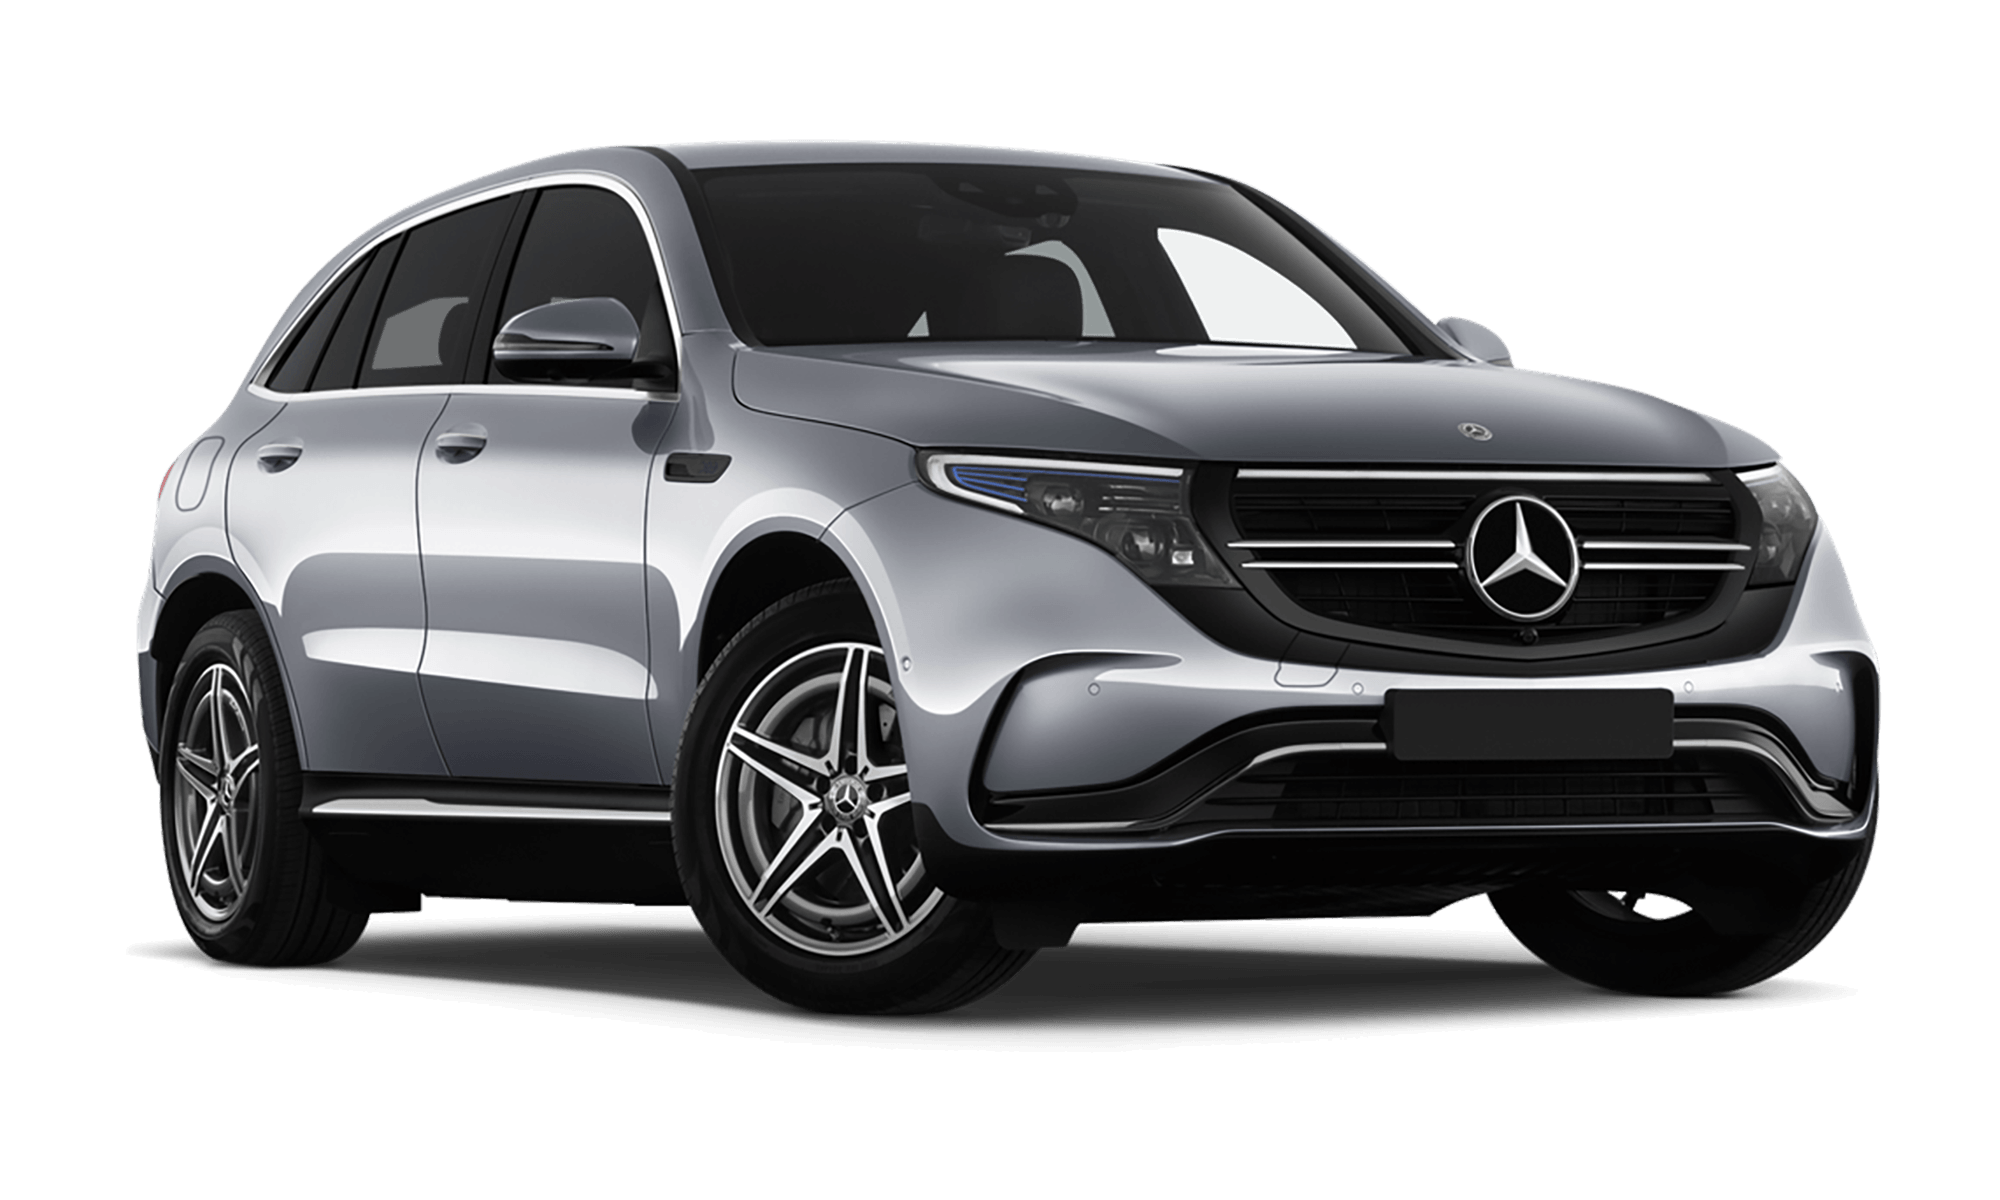 Mercedes Eqc White Background